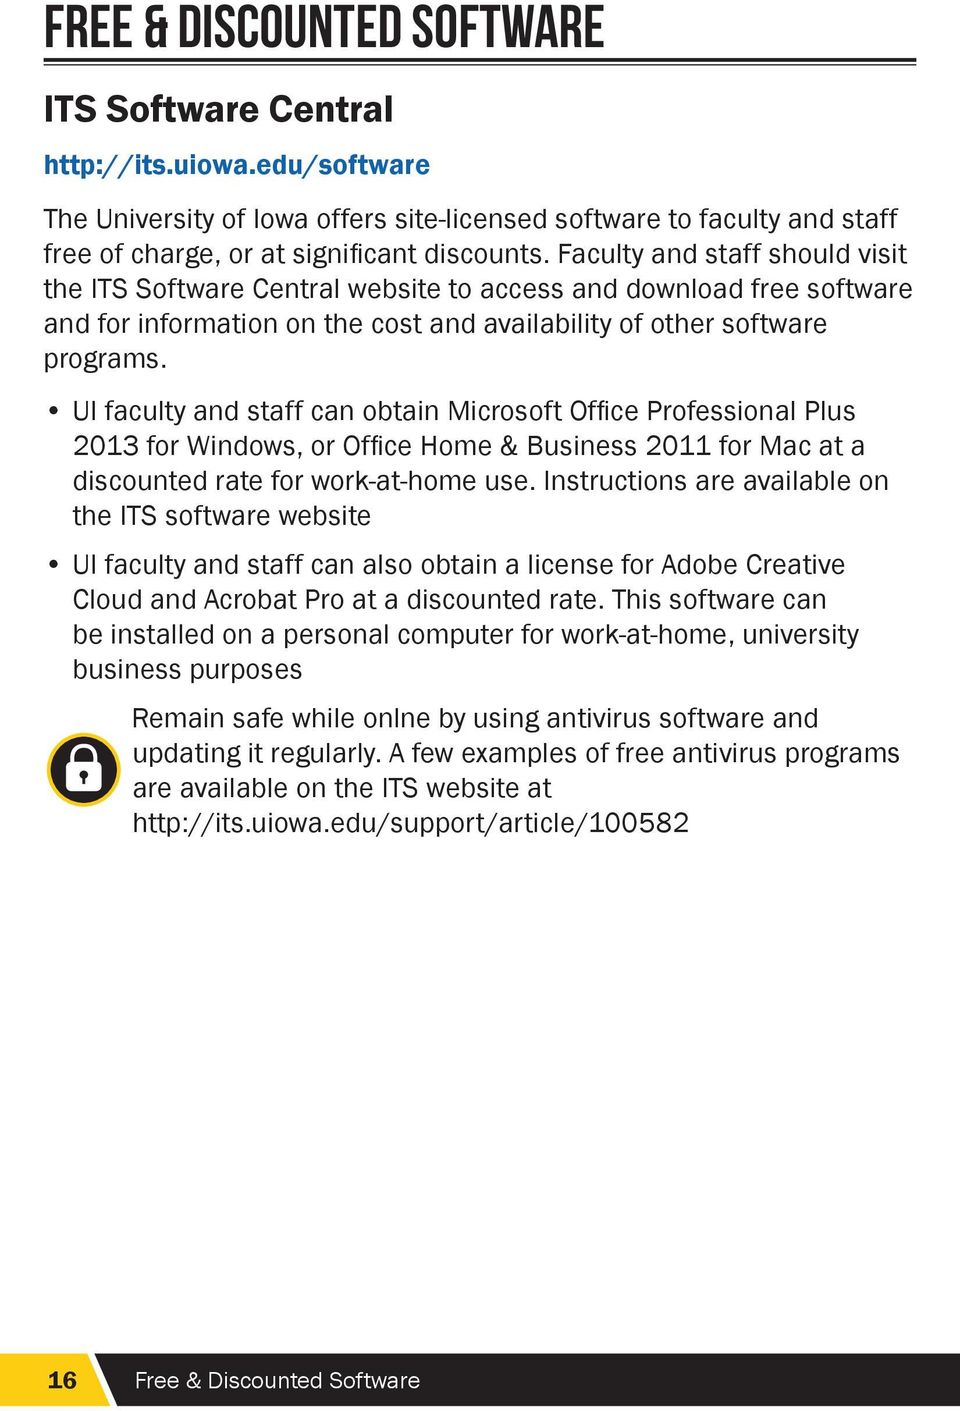 UI faculty and staff can obtain Microsoft Office Professional Plus 2013 for Windows, or Office Home & Business 2011 for Mac at a discounted rate for work-at-home use.